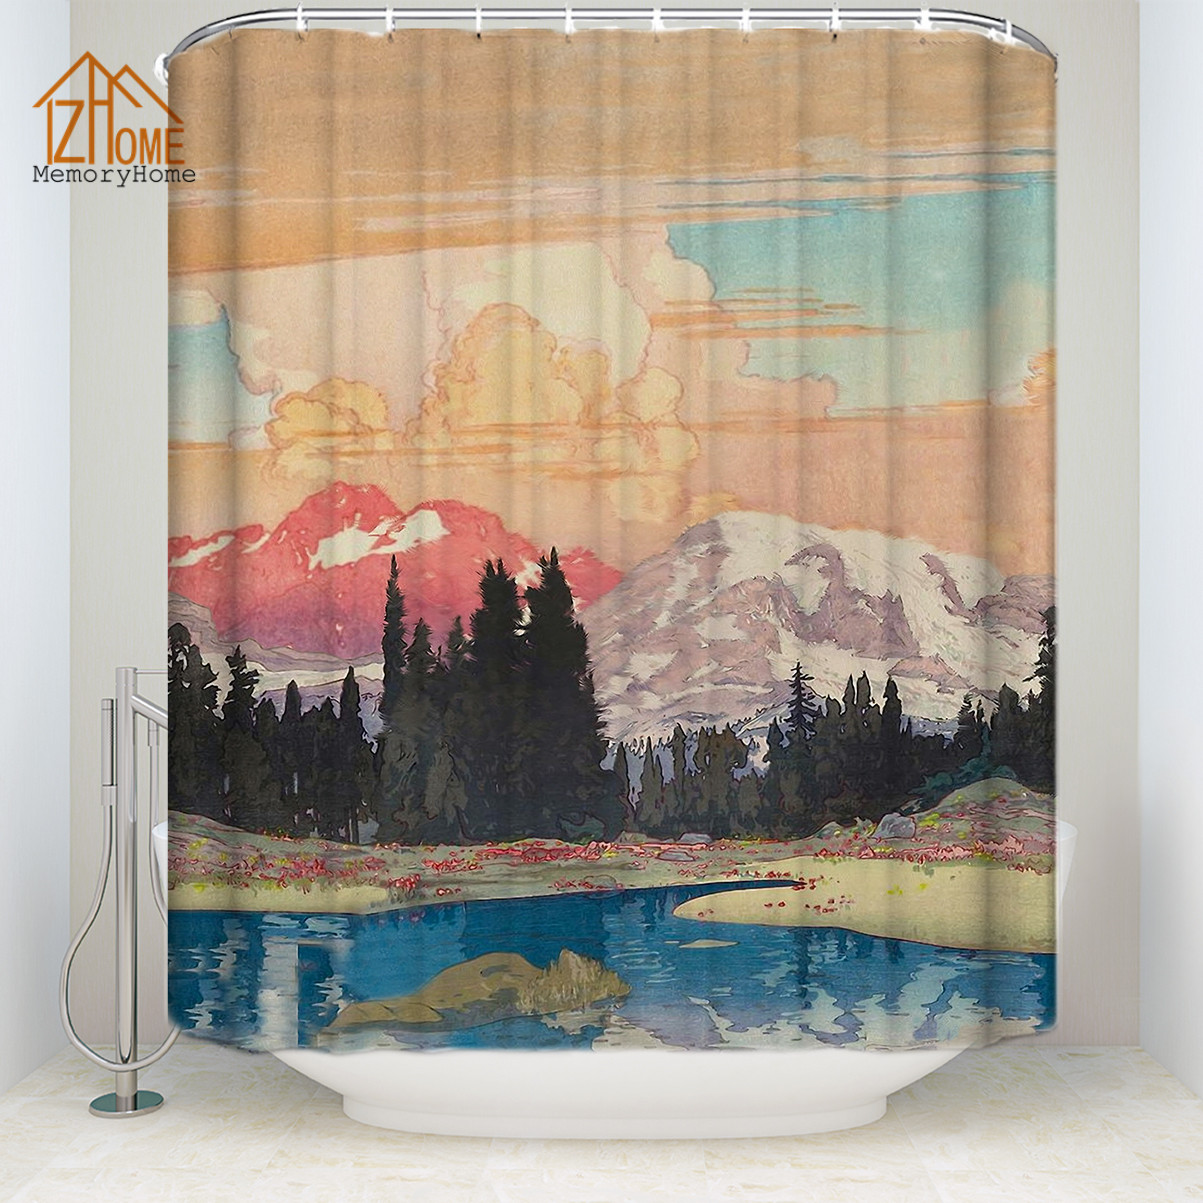 Fabric Shower Curtains Memory Home Japanese Style Print